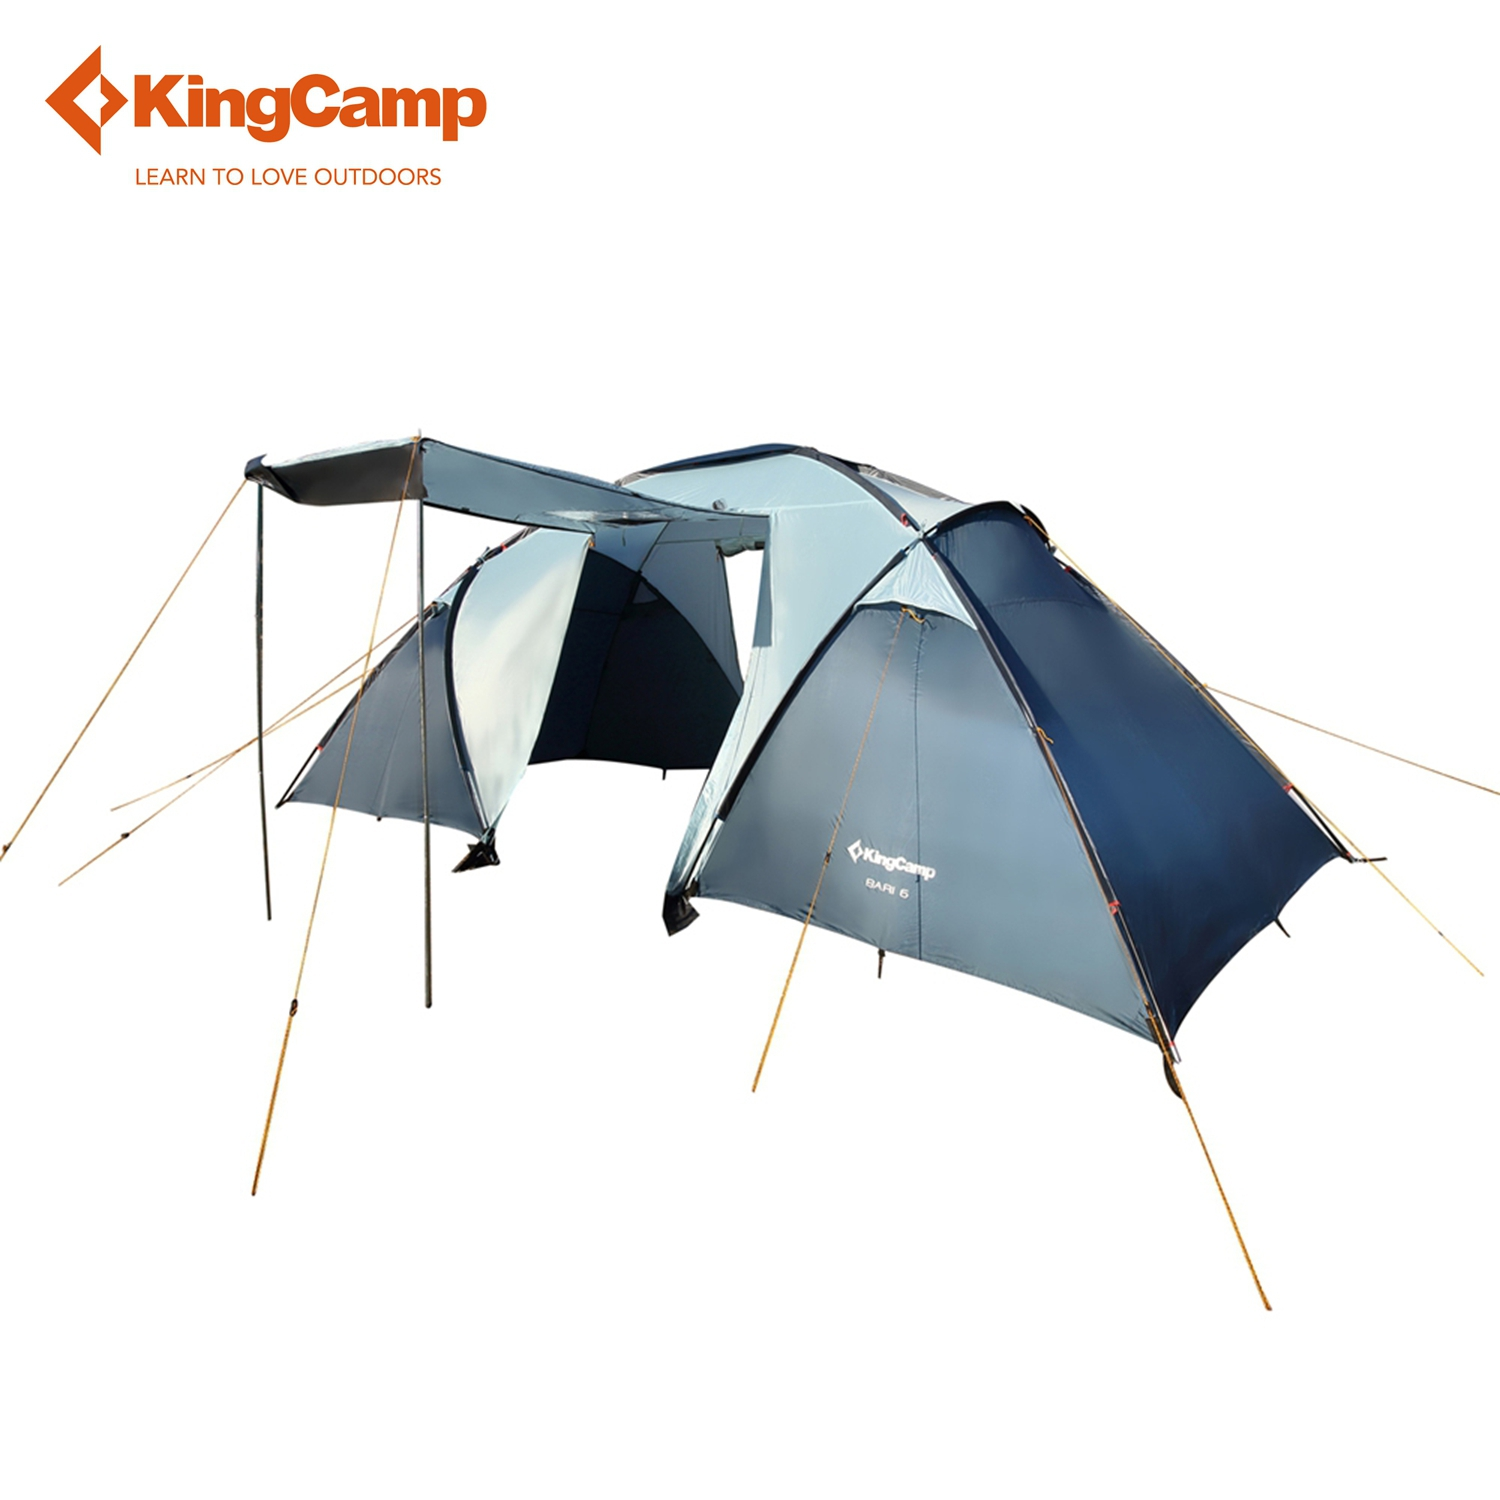 KingCamp Bari 6-Person 2-Room 3-Season Outdoor Tent for Family Camping Portable Outdoor Hiking Trekking Tent kingcamp camping tent waterproof brand windproof bari fire resistant 4 person 3 season outdoor tent for family camping